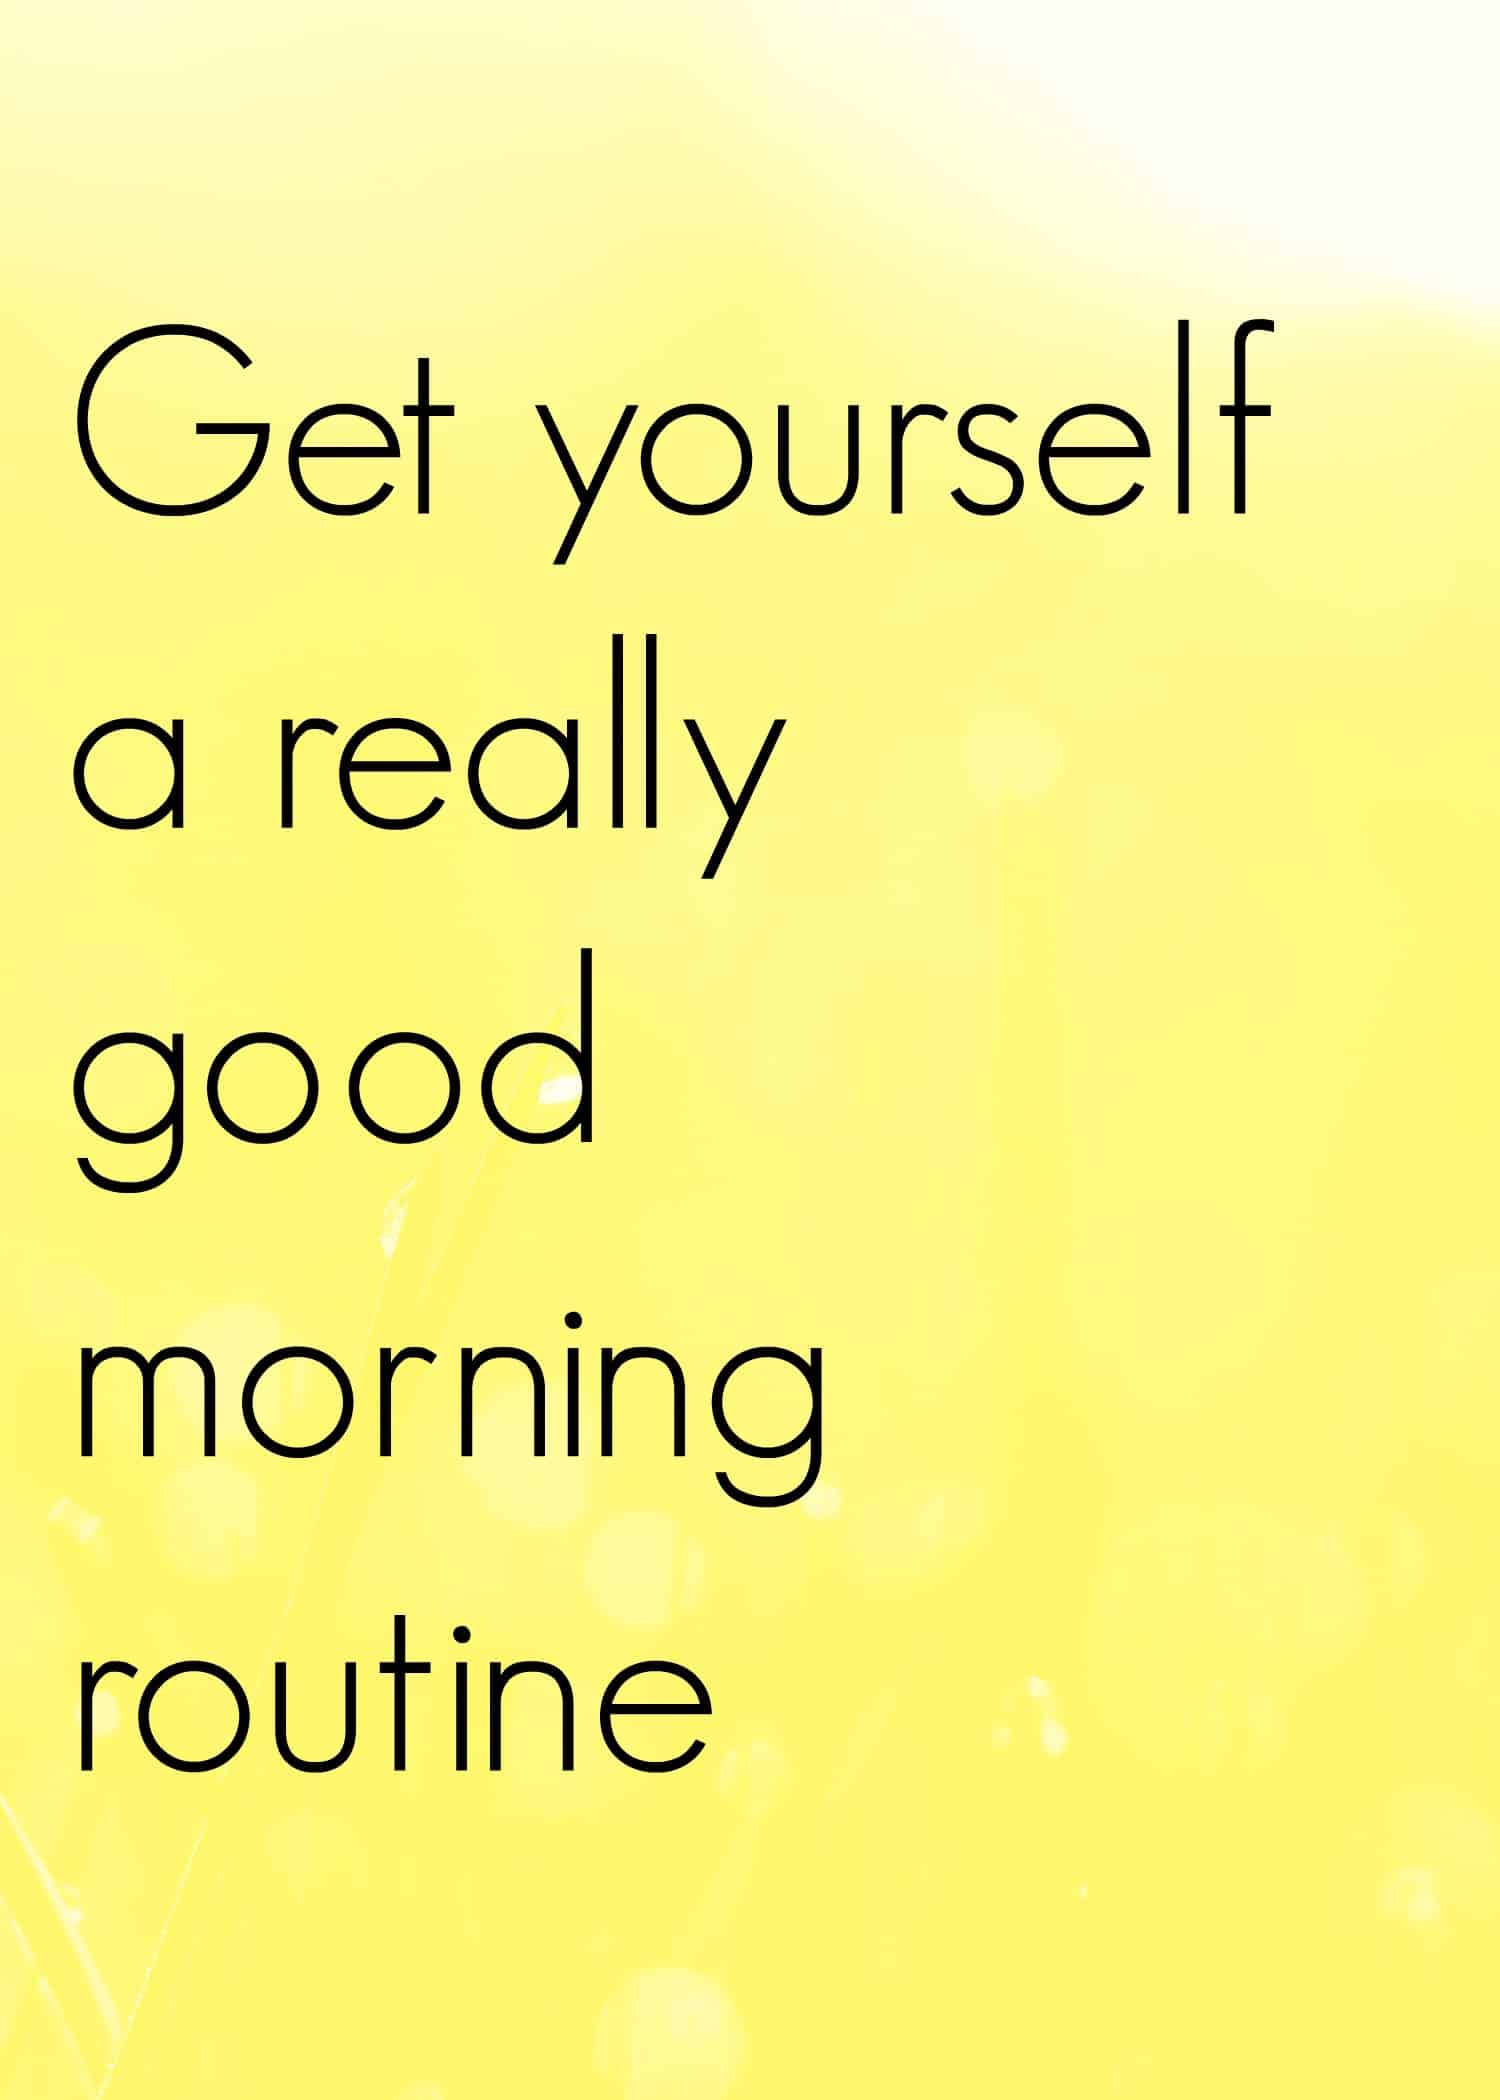 Tips on getting a good morning routine and help yourself to have a really positive day.